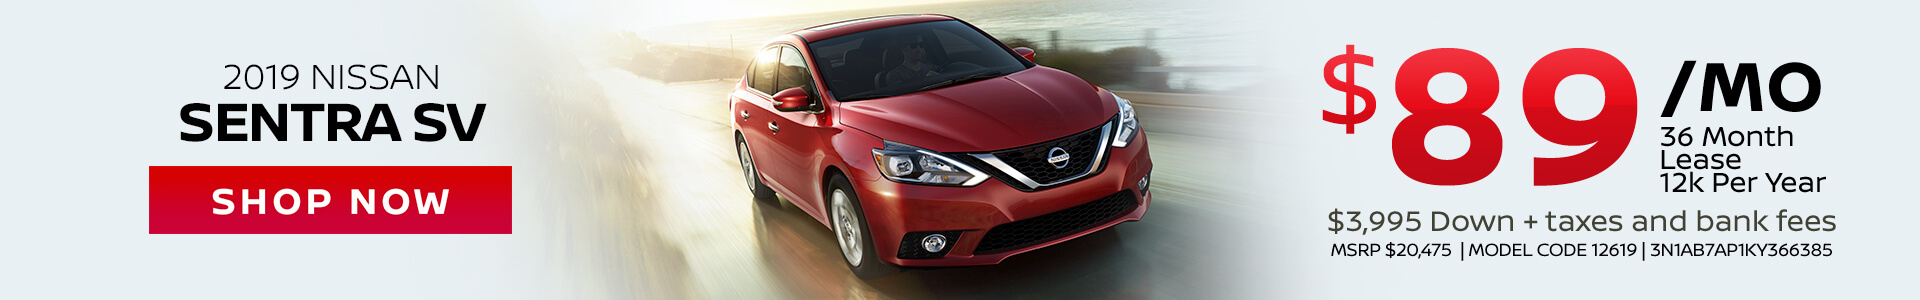 Nissan Sentra $89 Lease